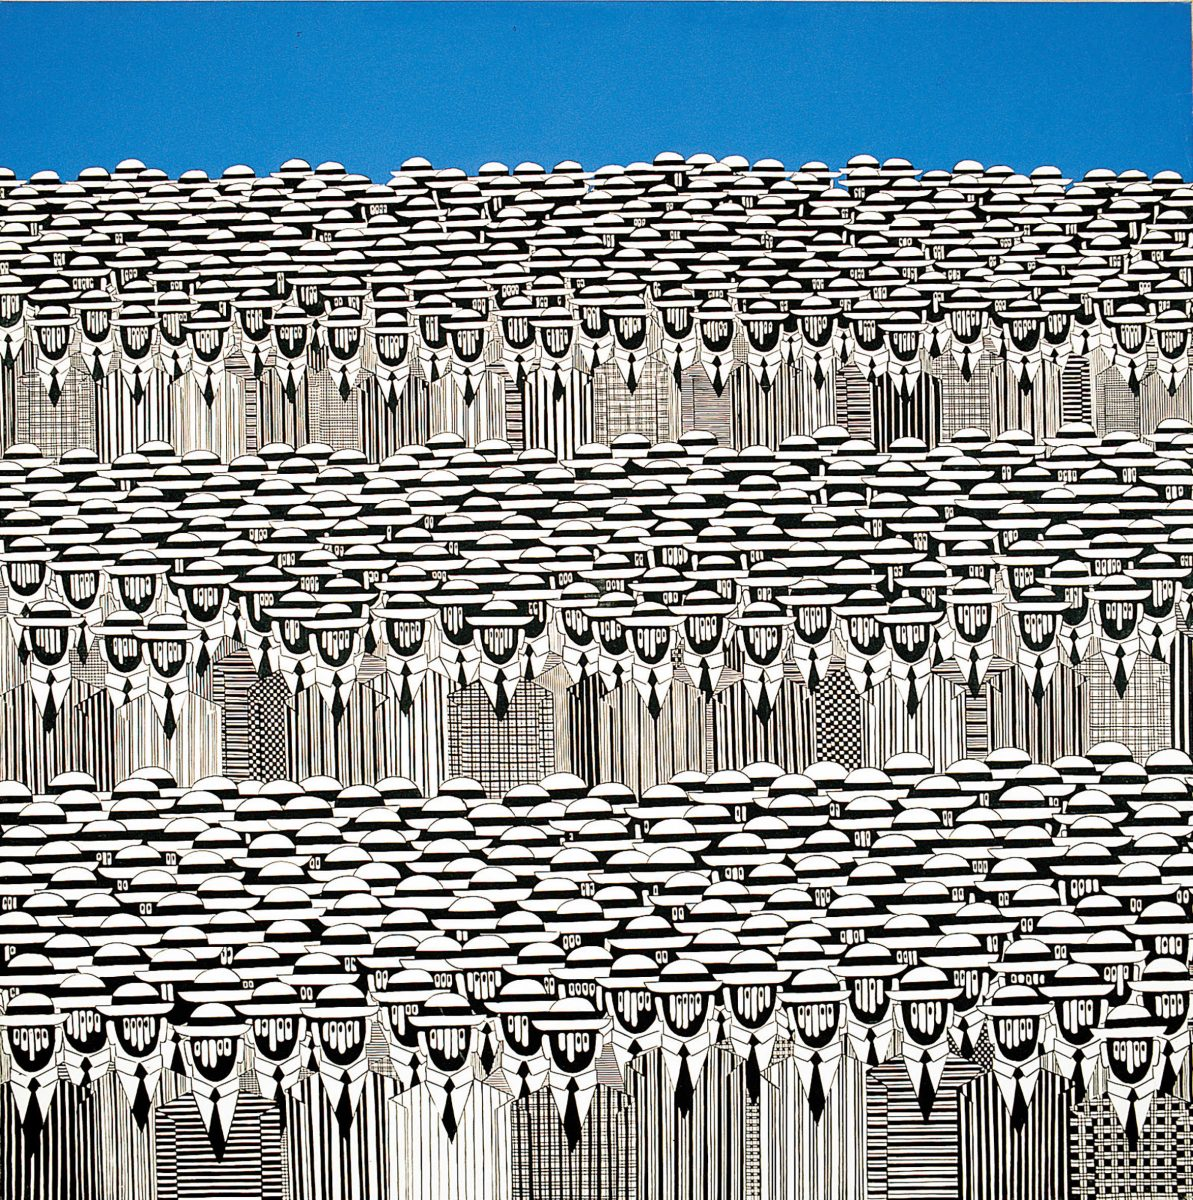 Giannis Gaitis – The Crowd and Loneliness